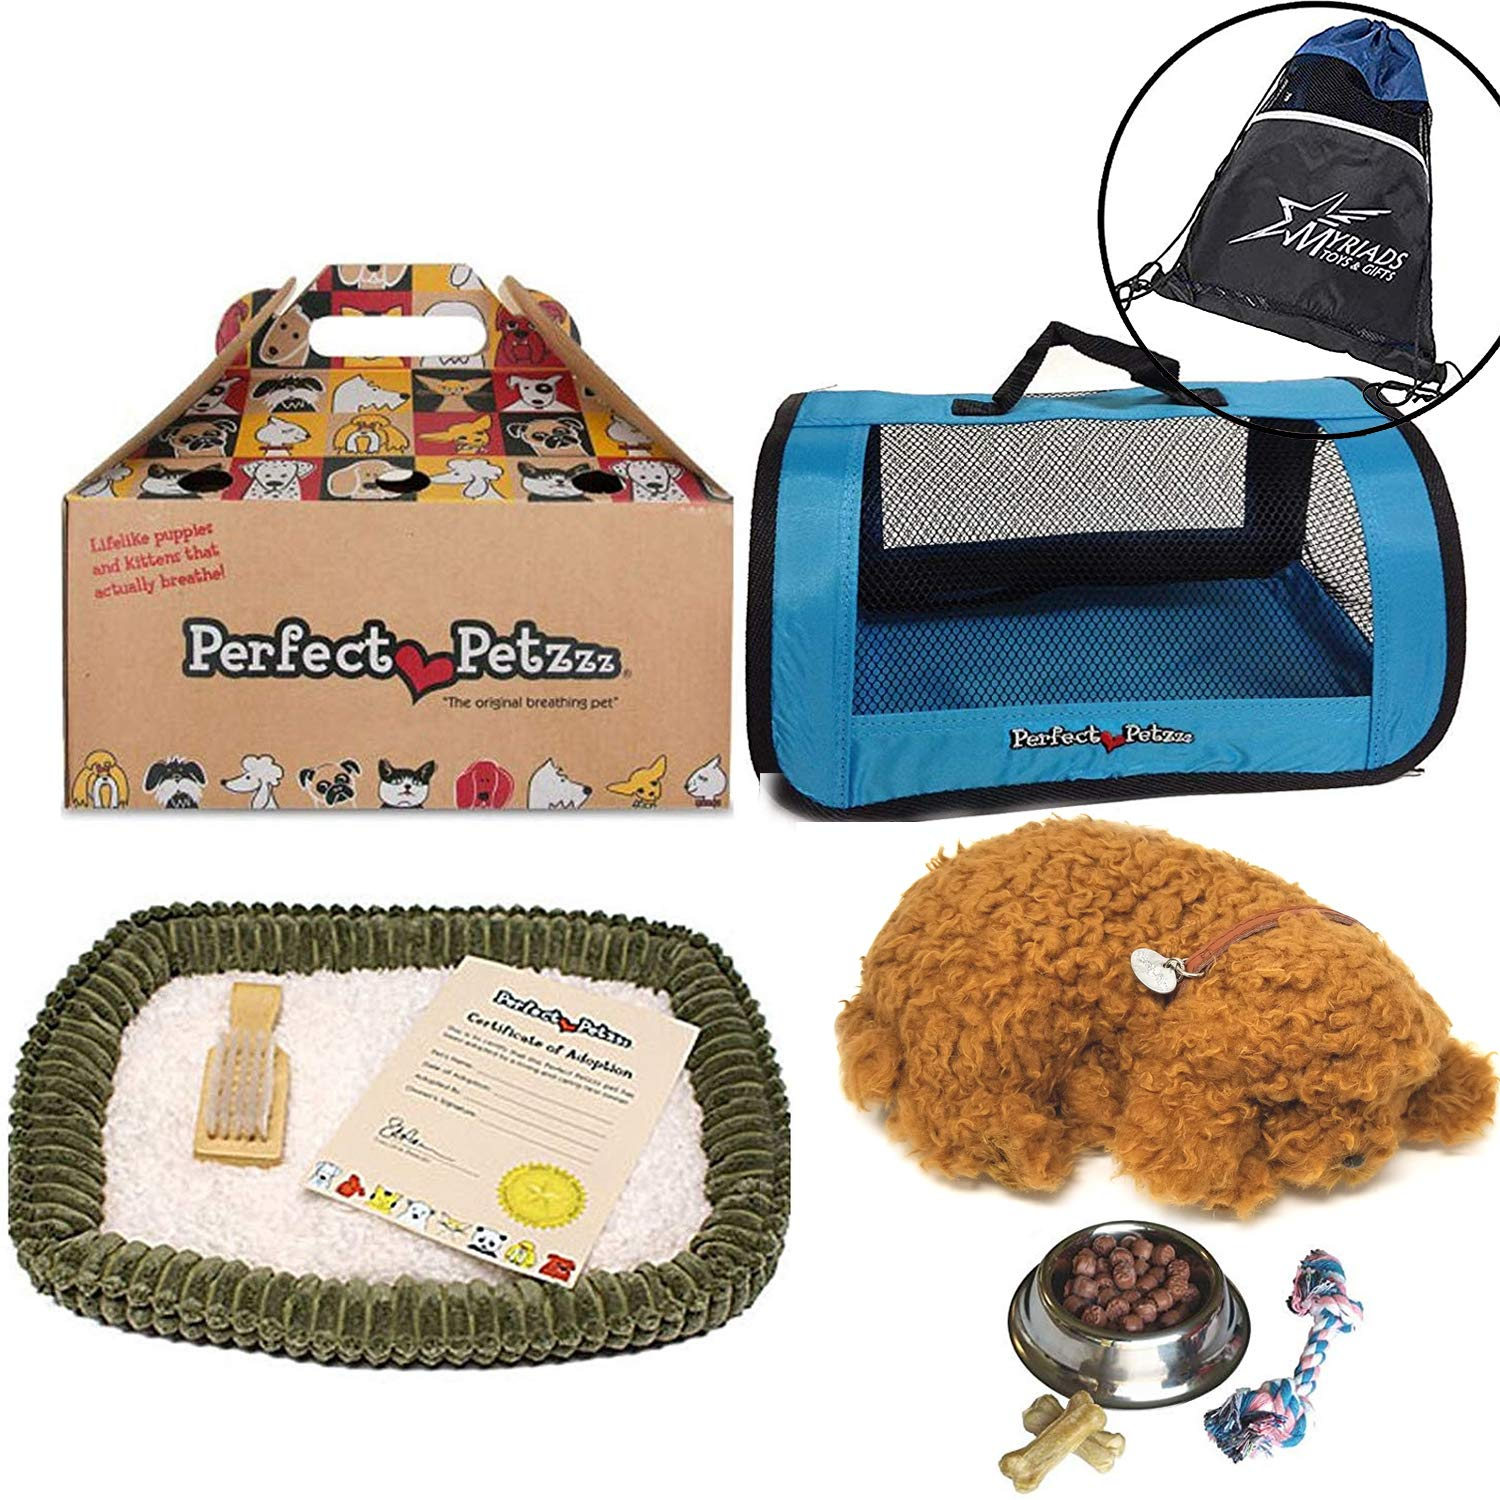 Perfect Petzzz Breathing Toy Poodle Plush Puppy Set, with Blue Tote, Dog Food, Treats, Chew Toy, and Drawstring Bag by Perfect Petzzz